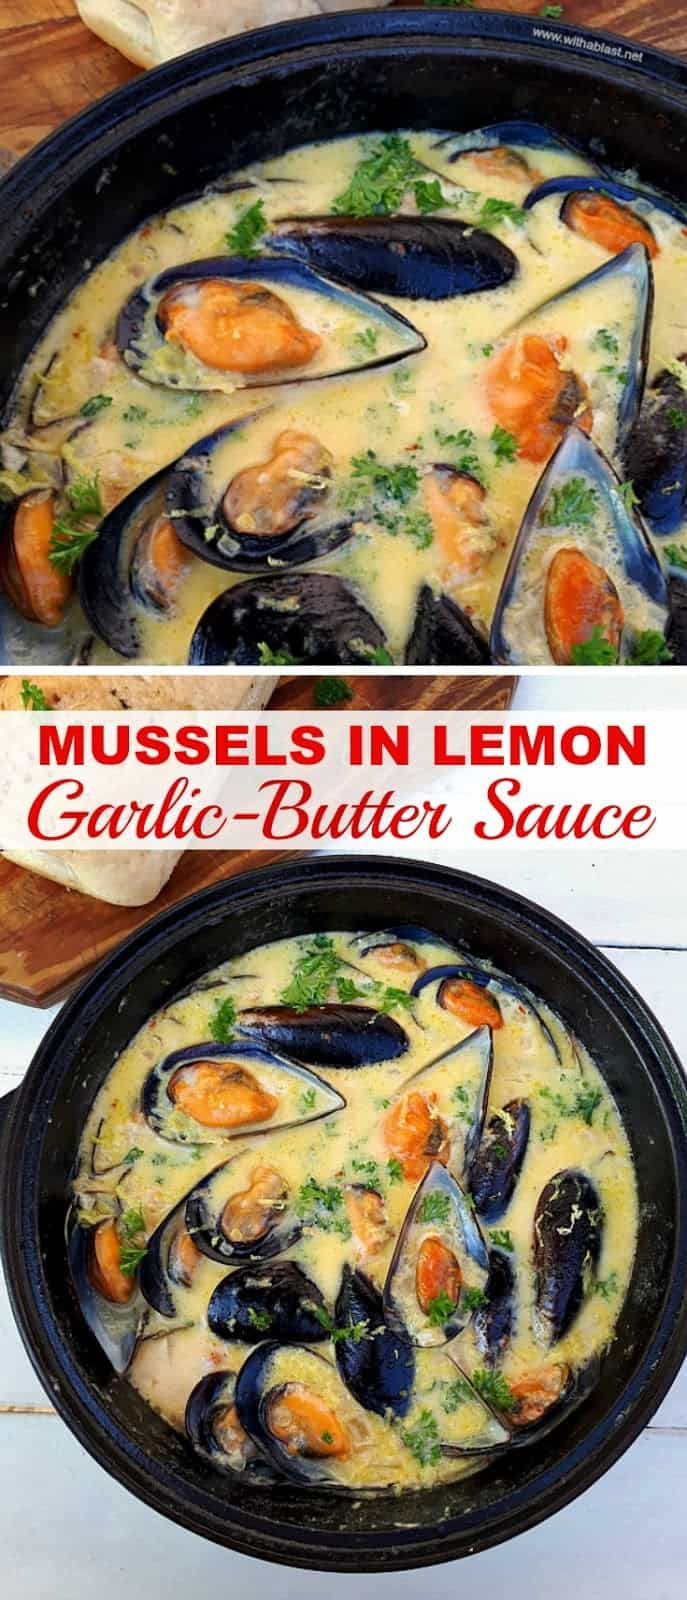 Mussels In Lemon Garlic-Butter Sauce | With A Blast